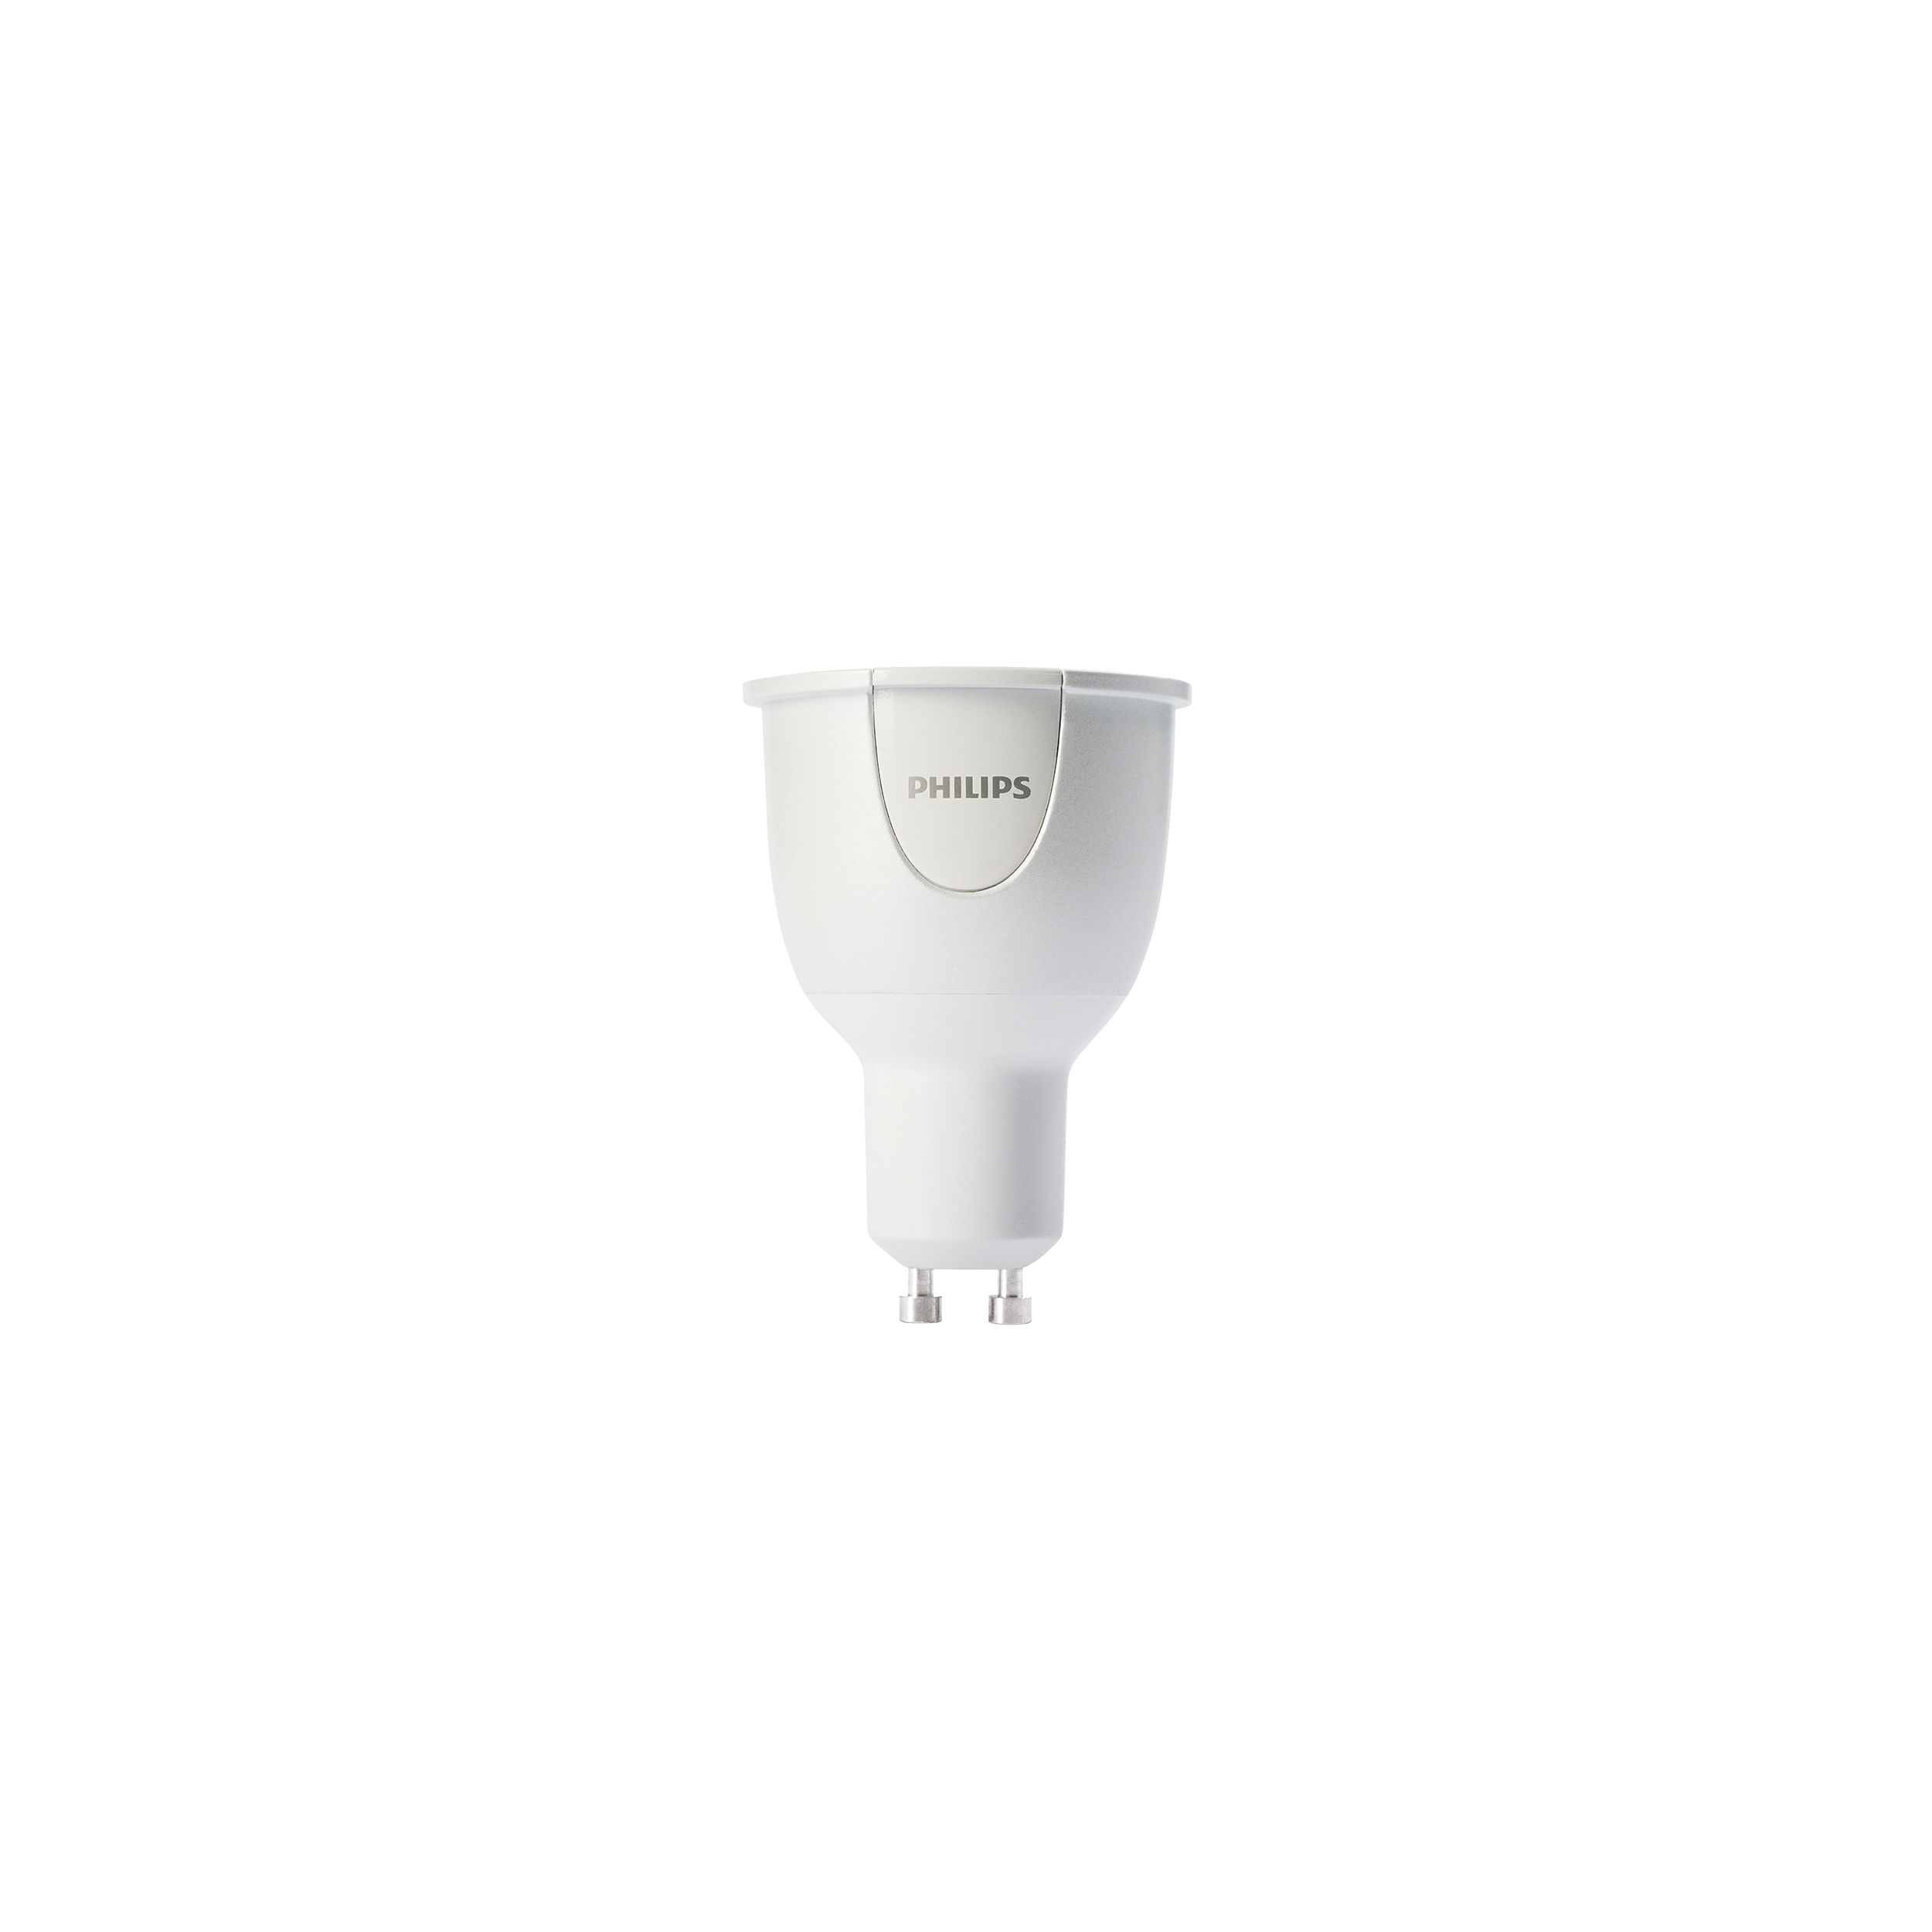 philips hue ampoule led connect e gu10 pilotable avec smartphone 8718291770923 ebay. Black Bedroom Furniture Sets. Home Design Ideas